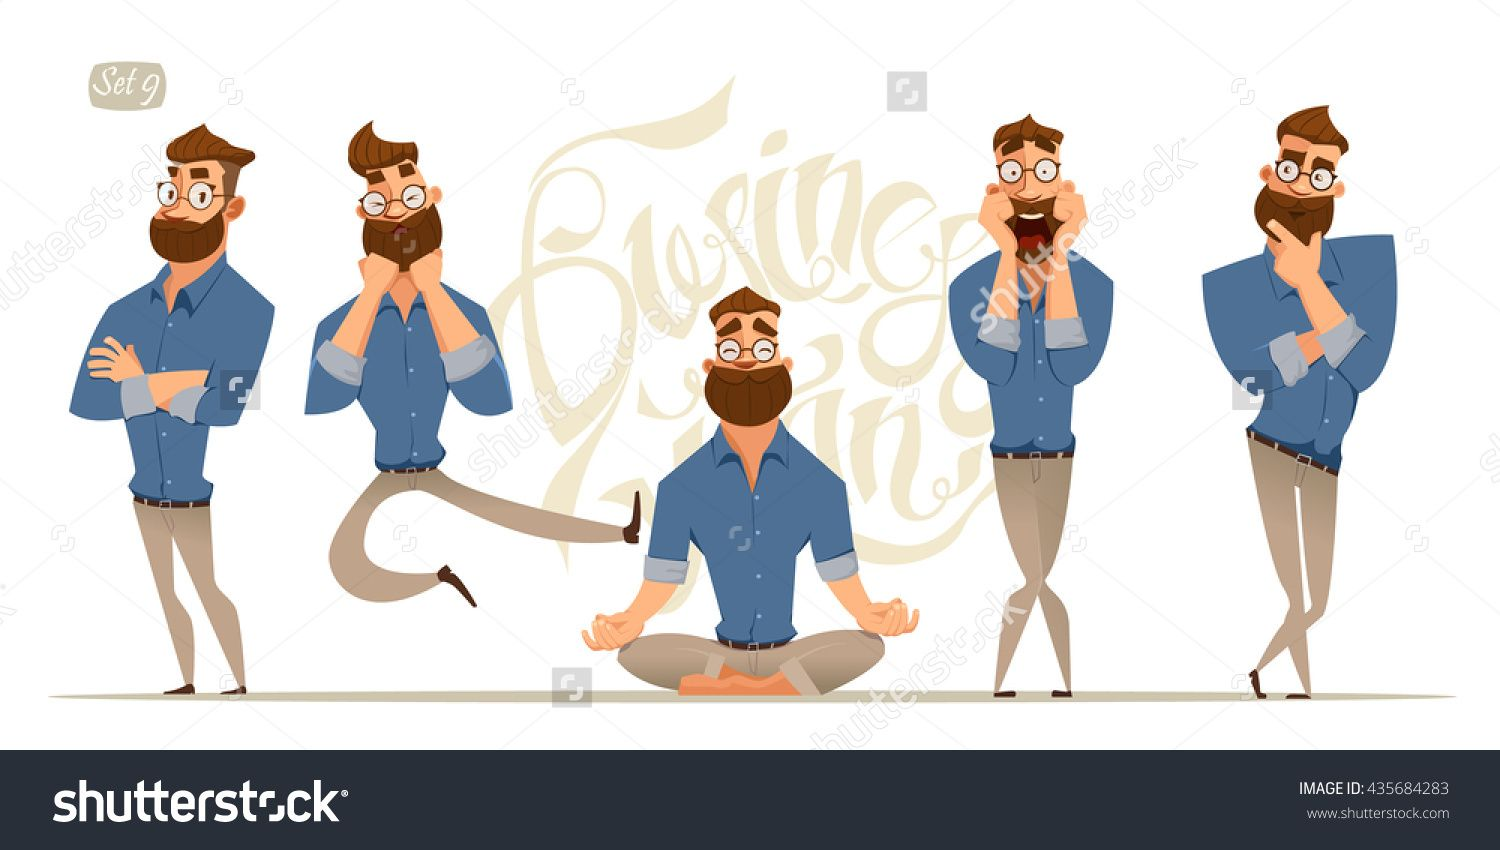 8110443d42a8 Business Man Characters. Business Mans In Casual Clothes. Emotions And  Expressions Stock Vector Illustration 435684283 : Shutterstock